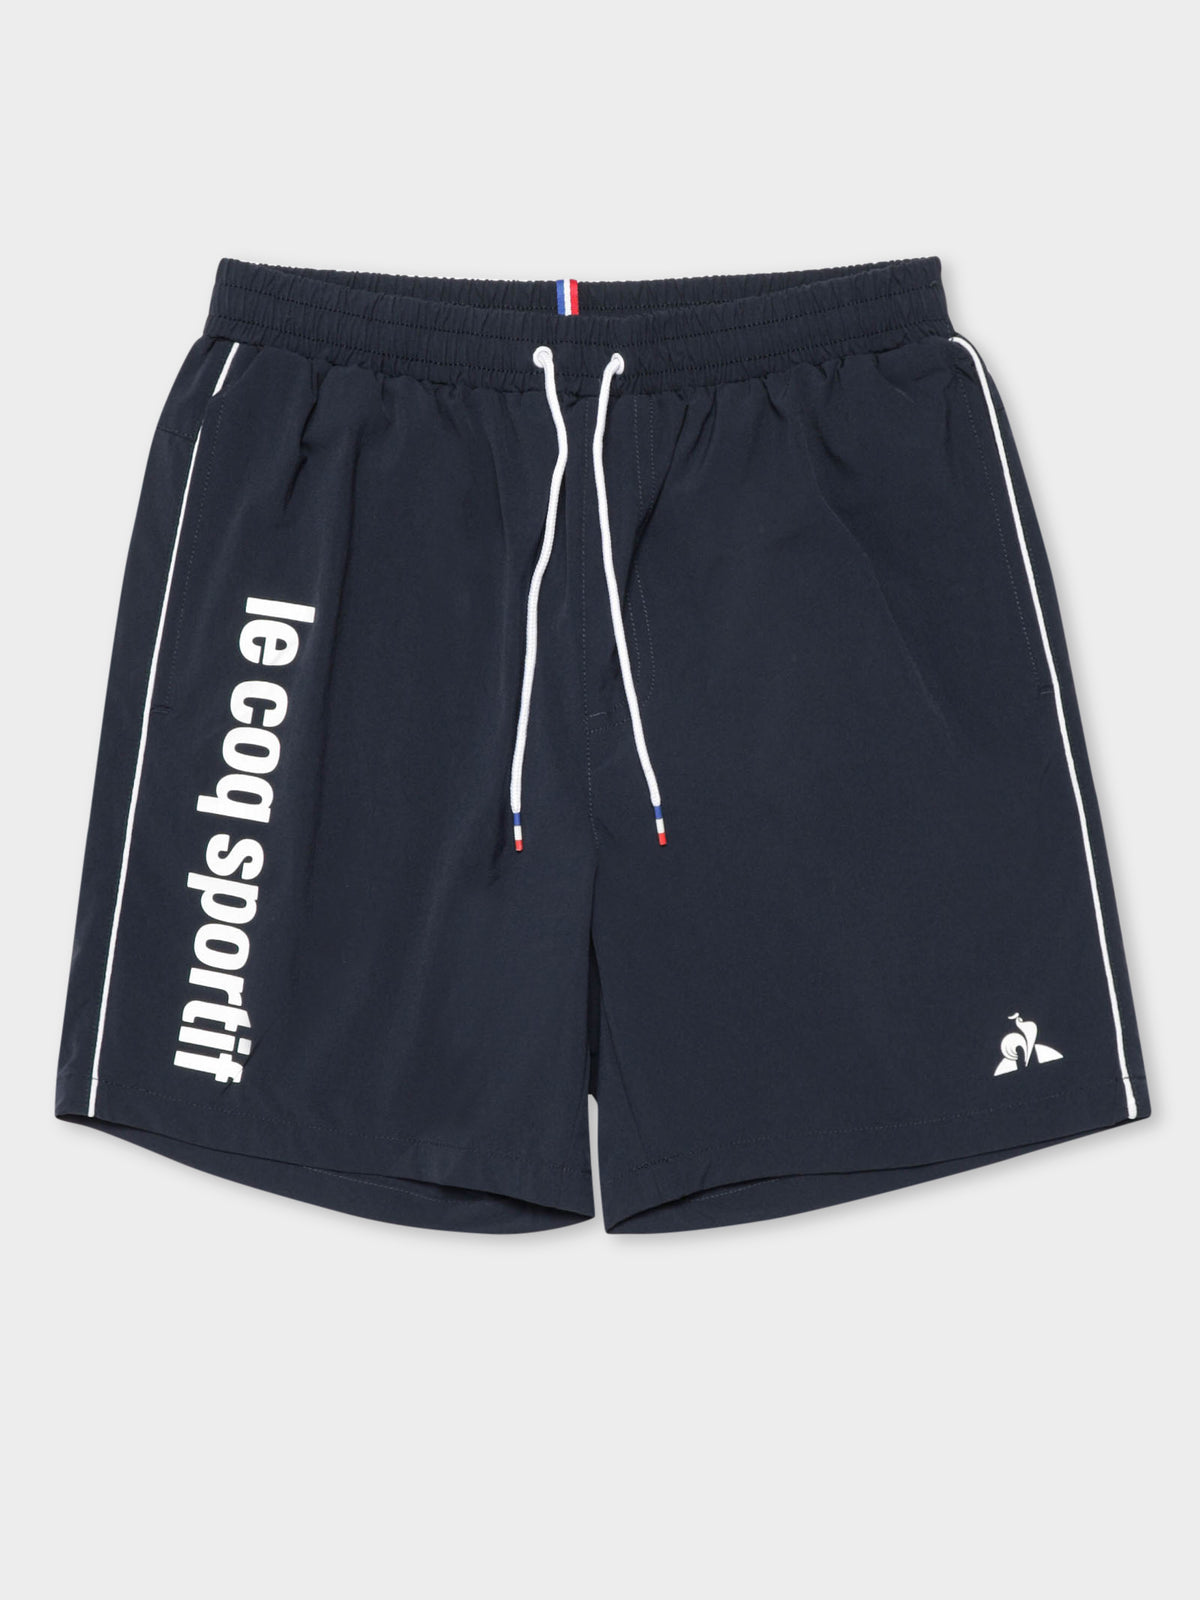 Concurrent Shorts in Dress Blue